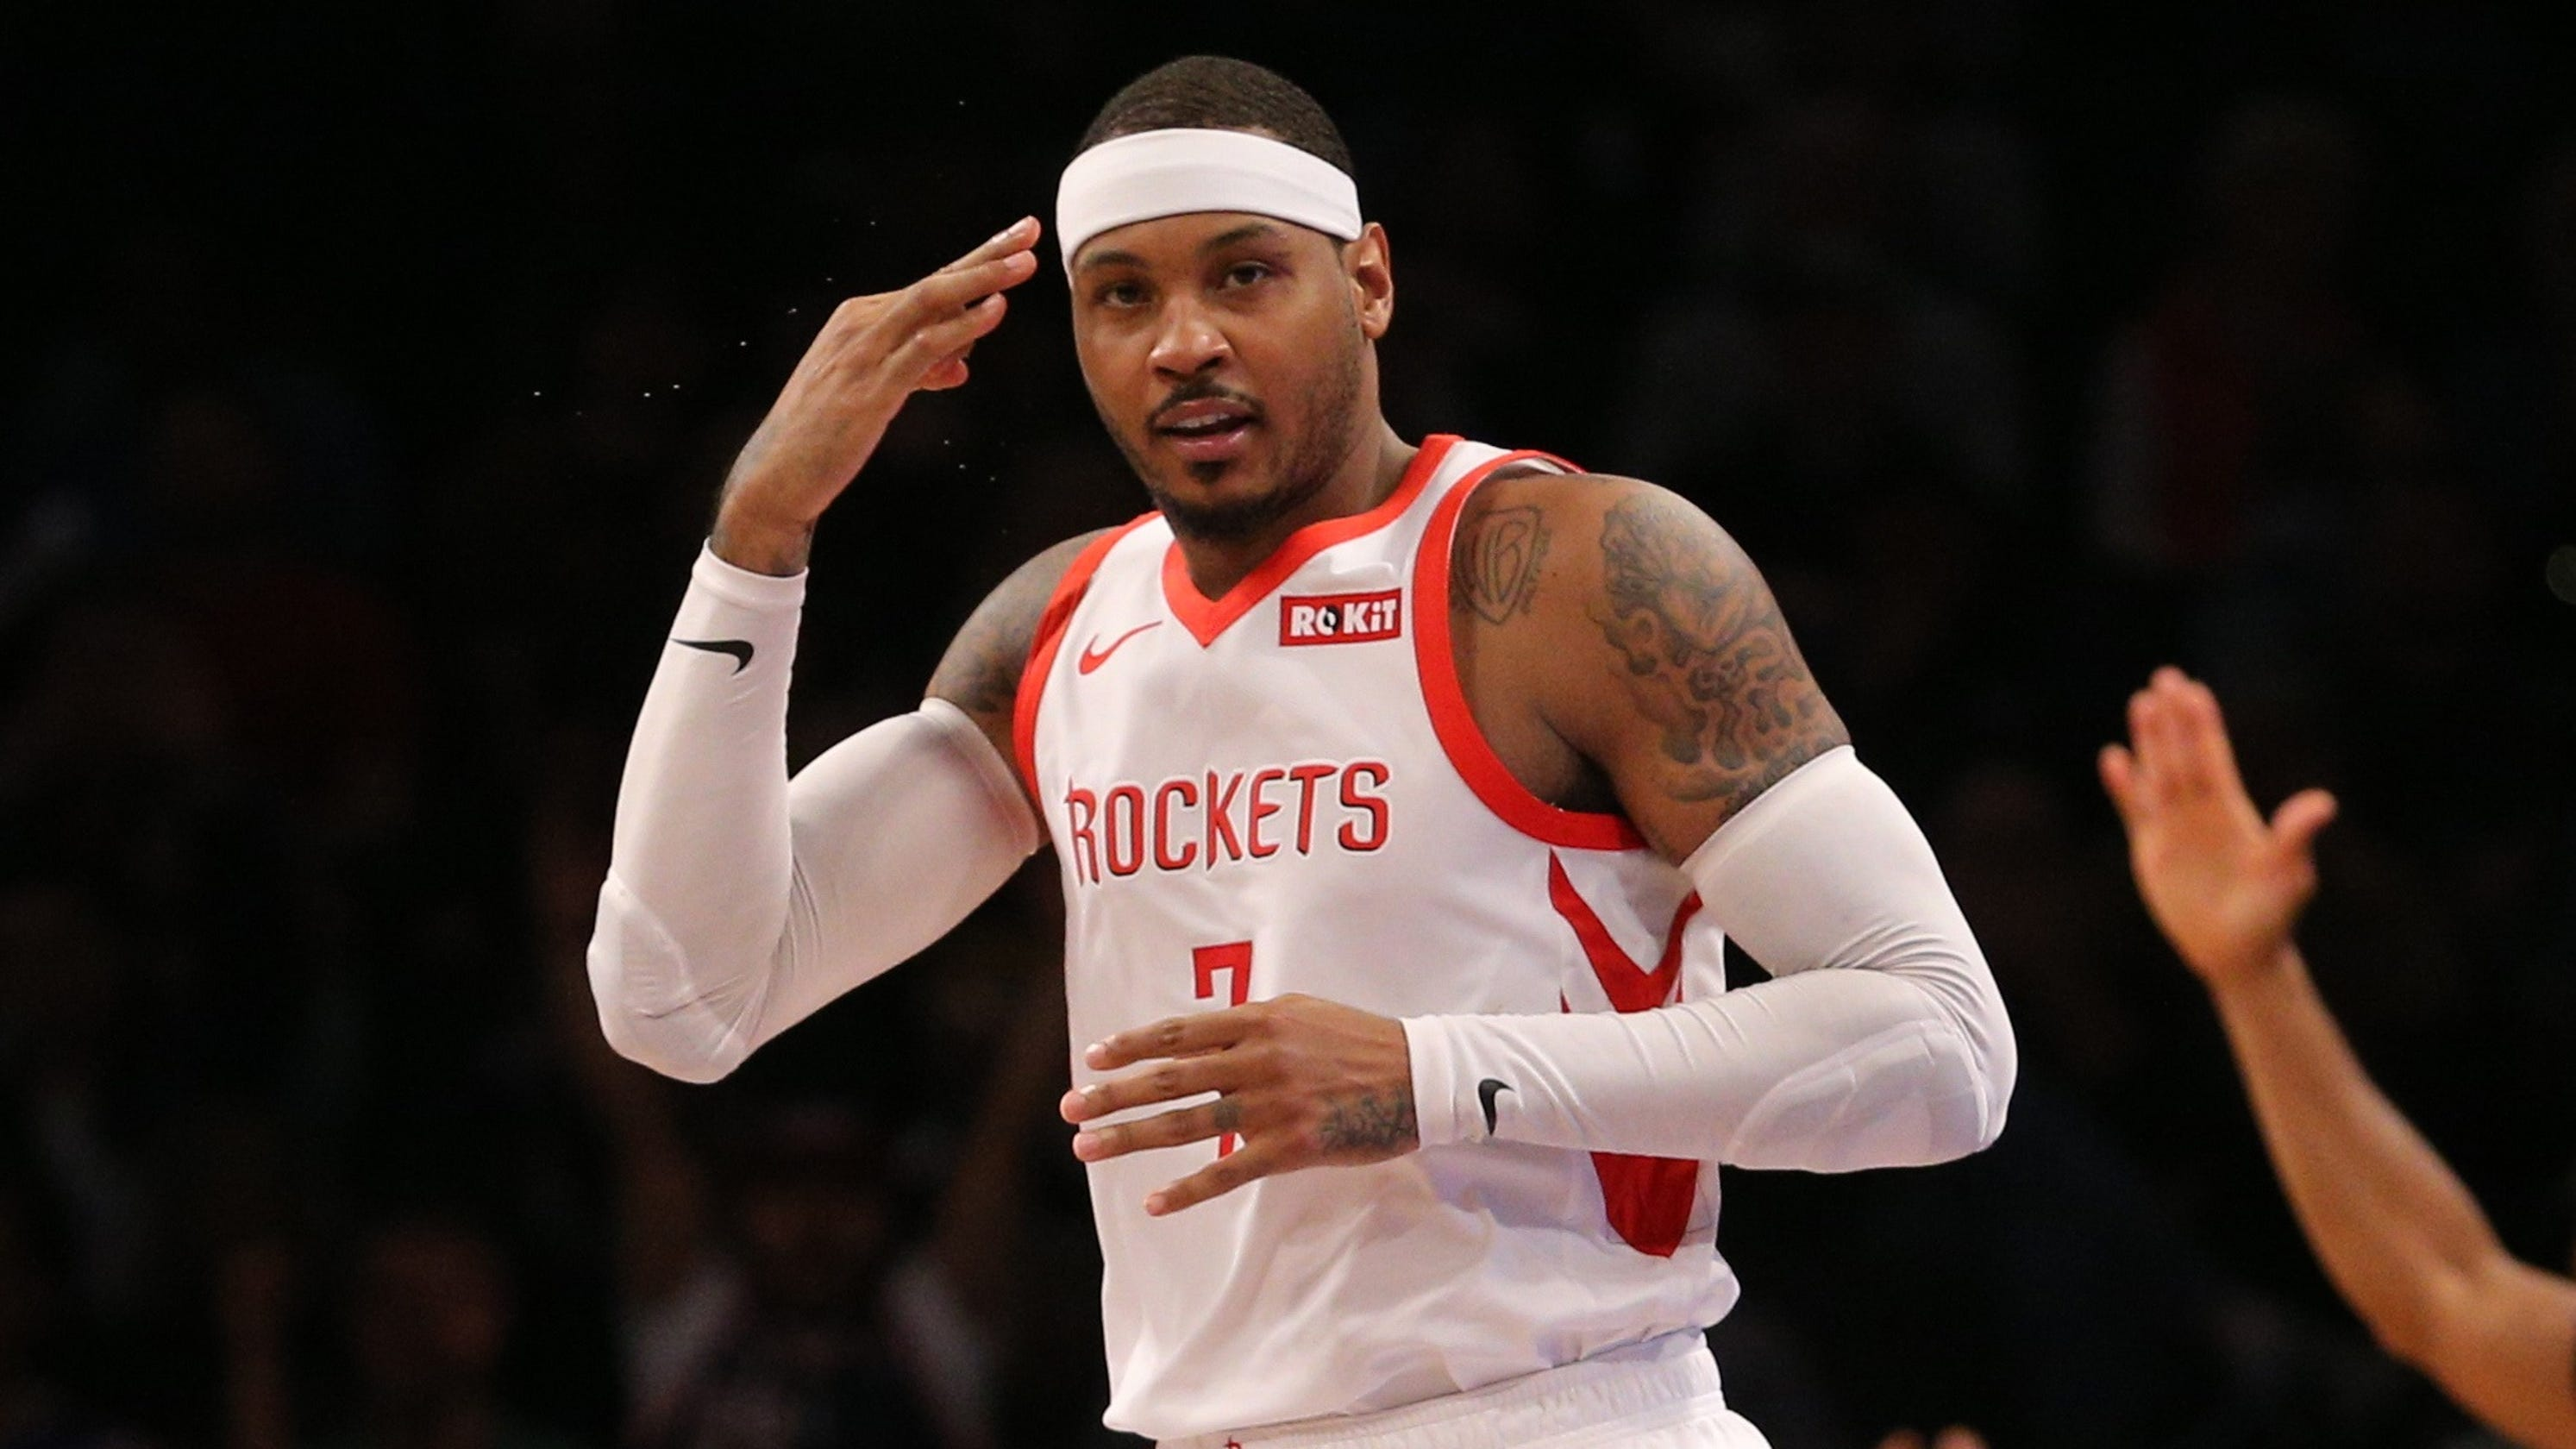 Carmelo Anthony  Four potential landing spots after parting ways with  Rockets a5689df2e